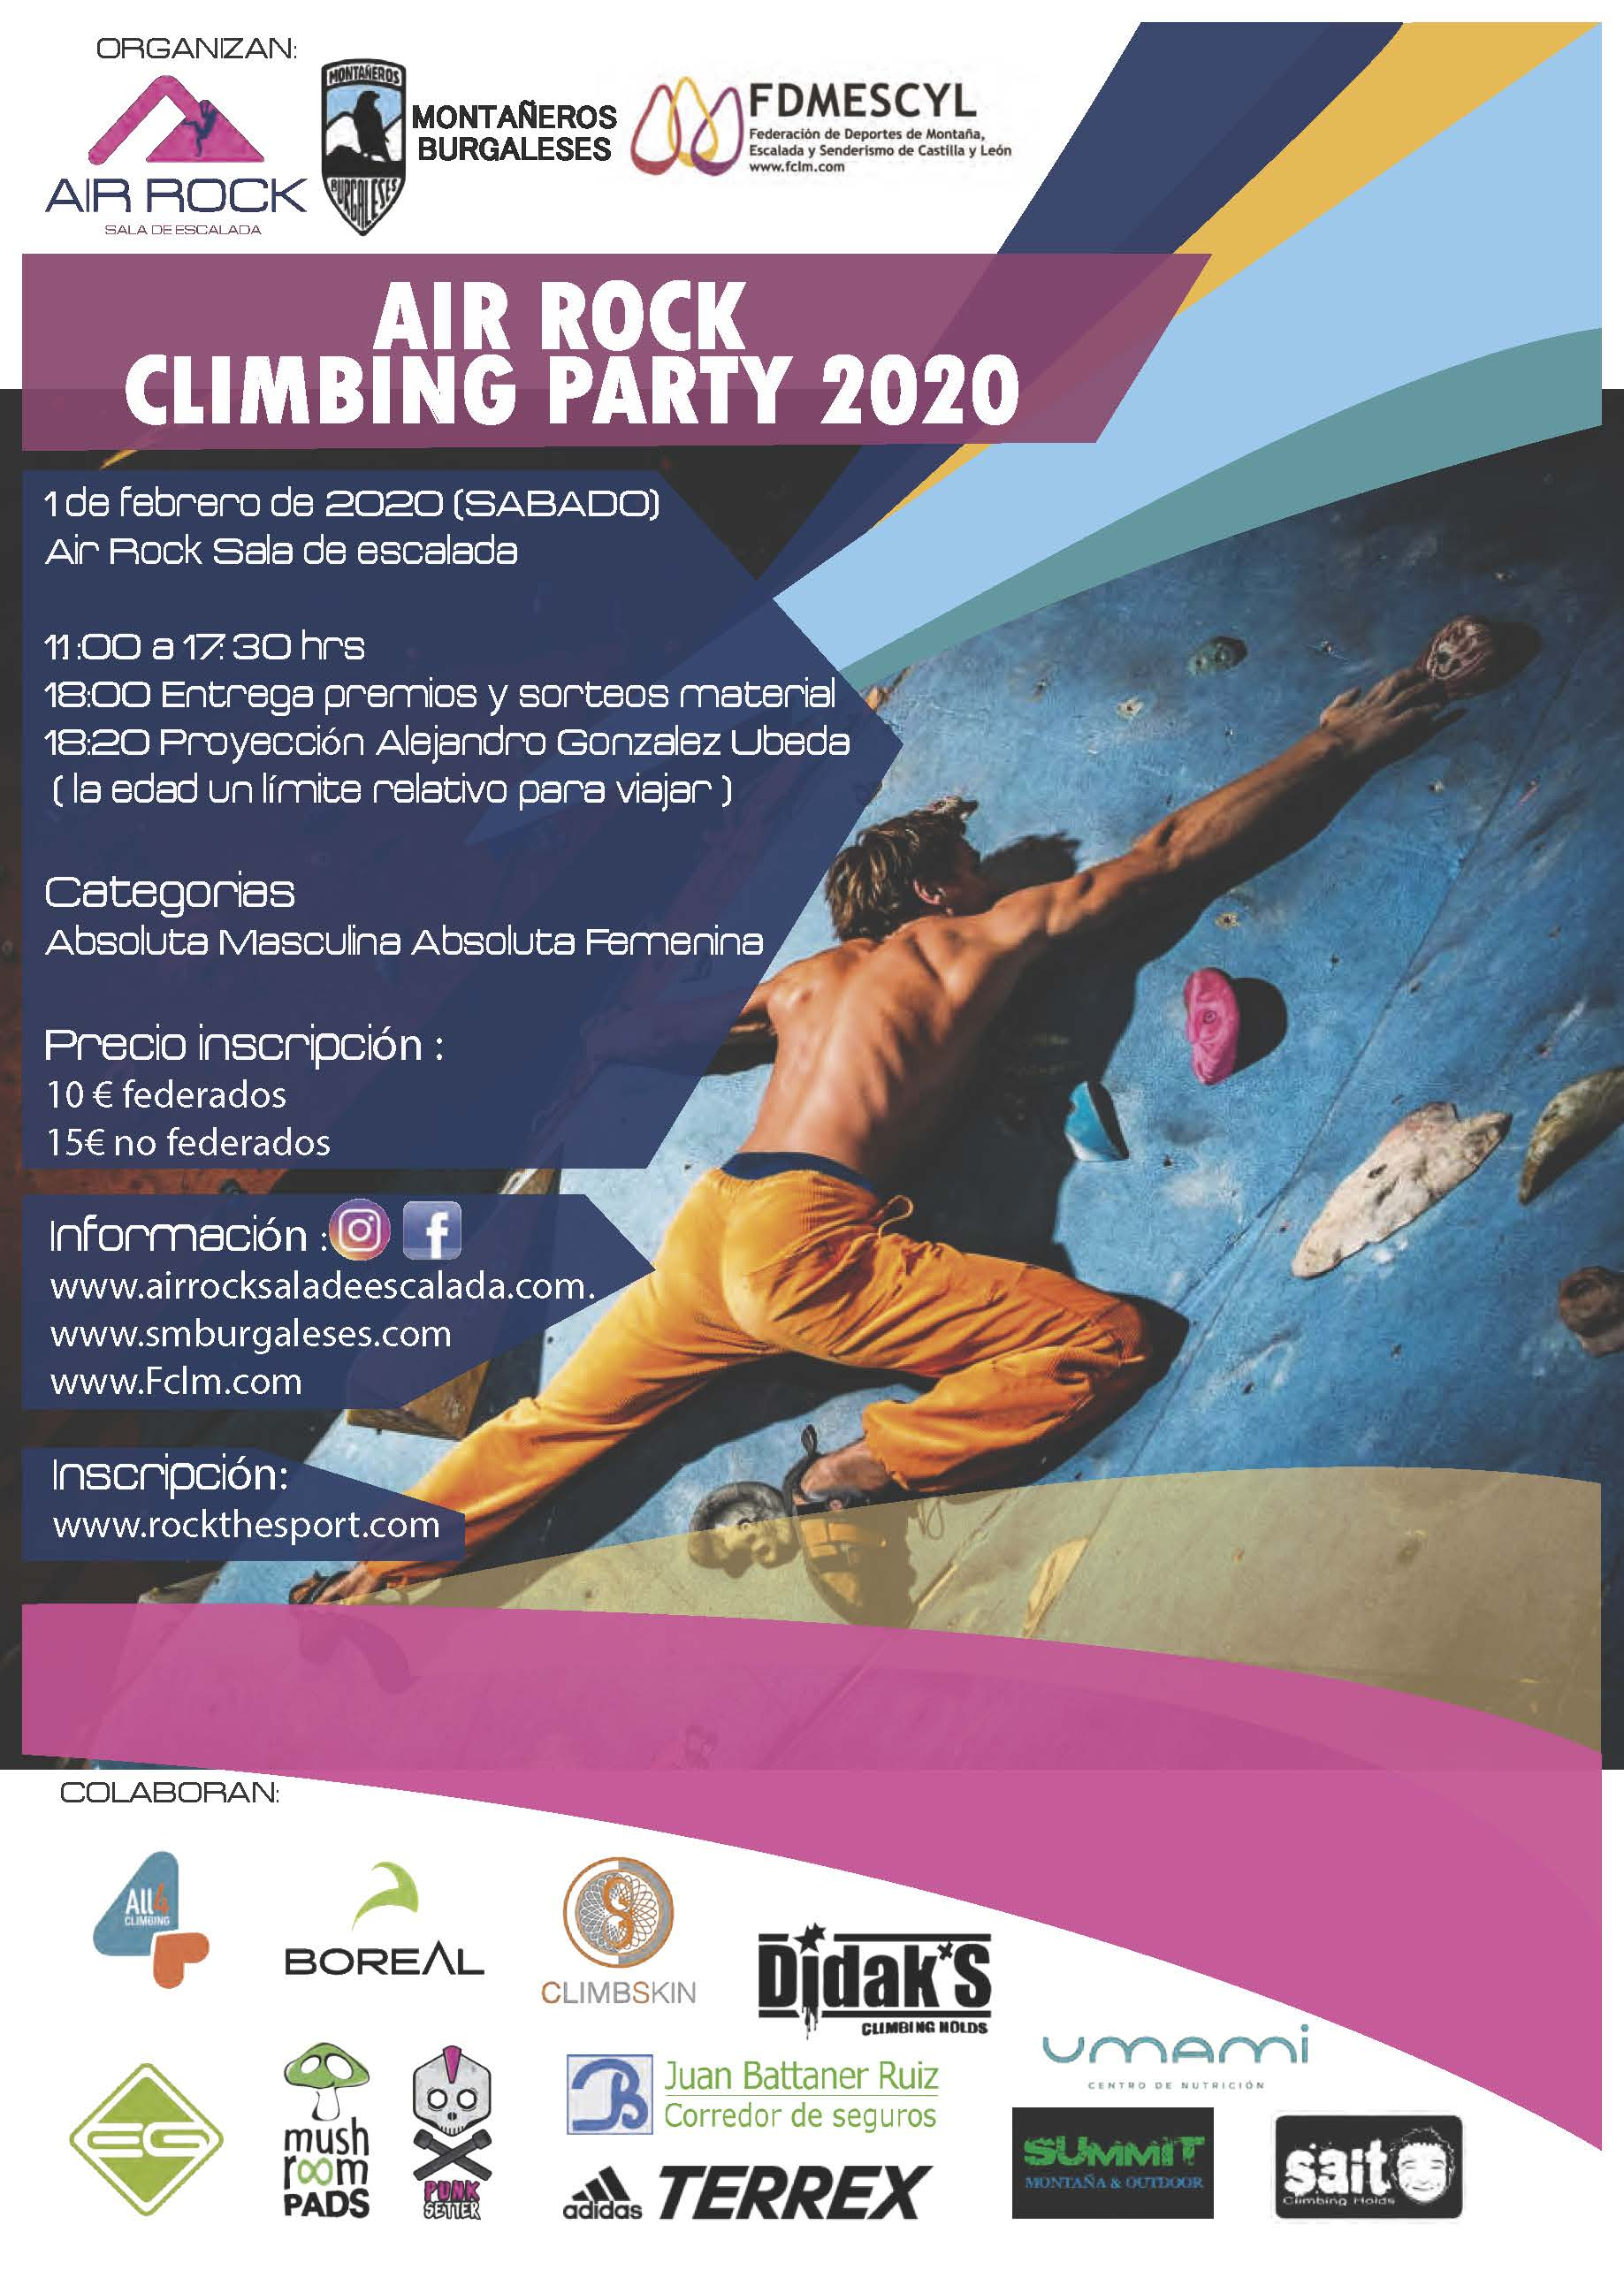 Air Rock Climbing Party 2020